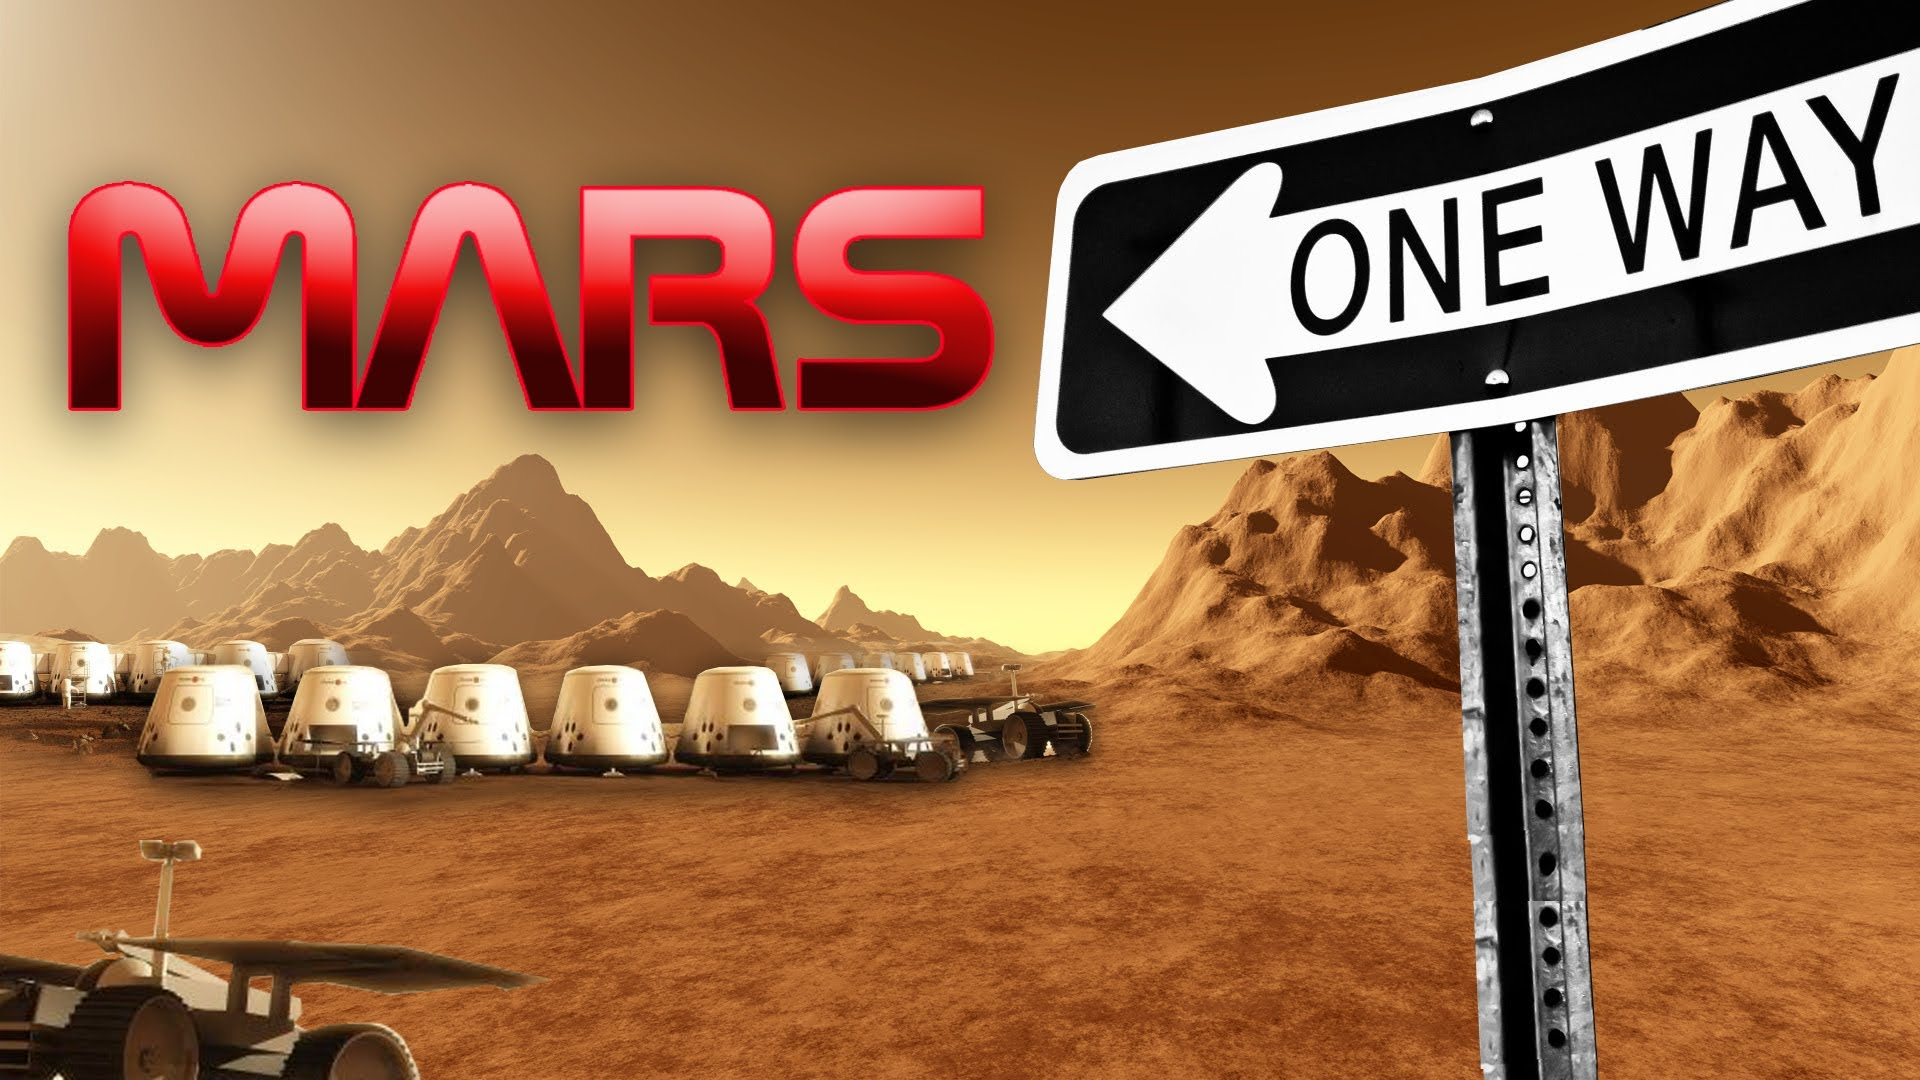 Mars One's Red Planet Colony Project (Gallery)